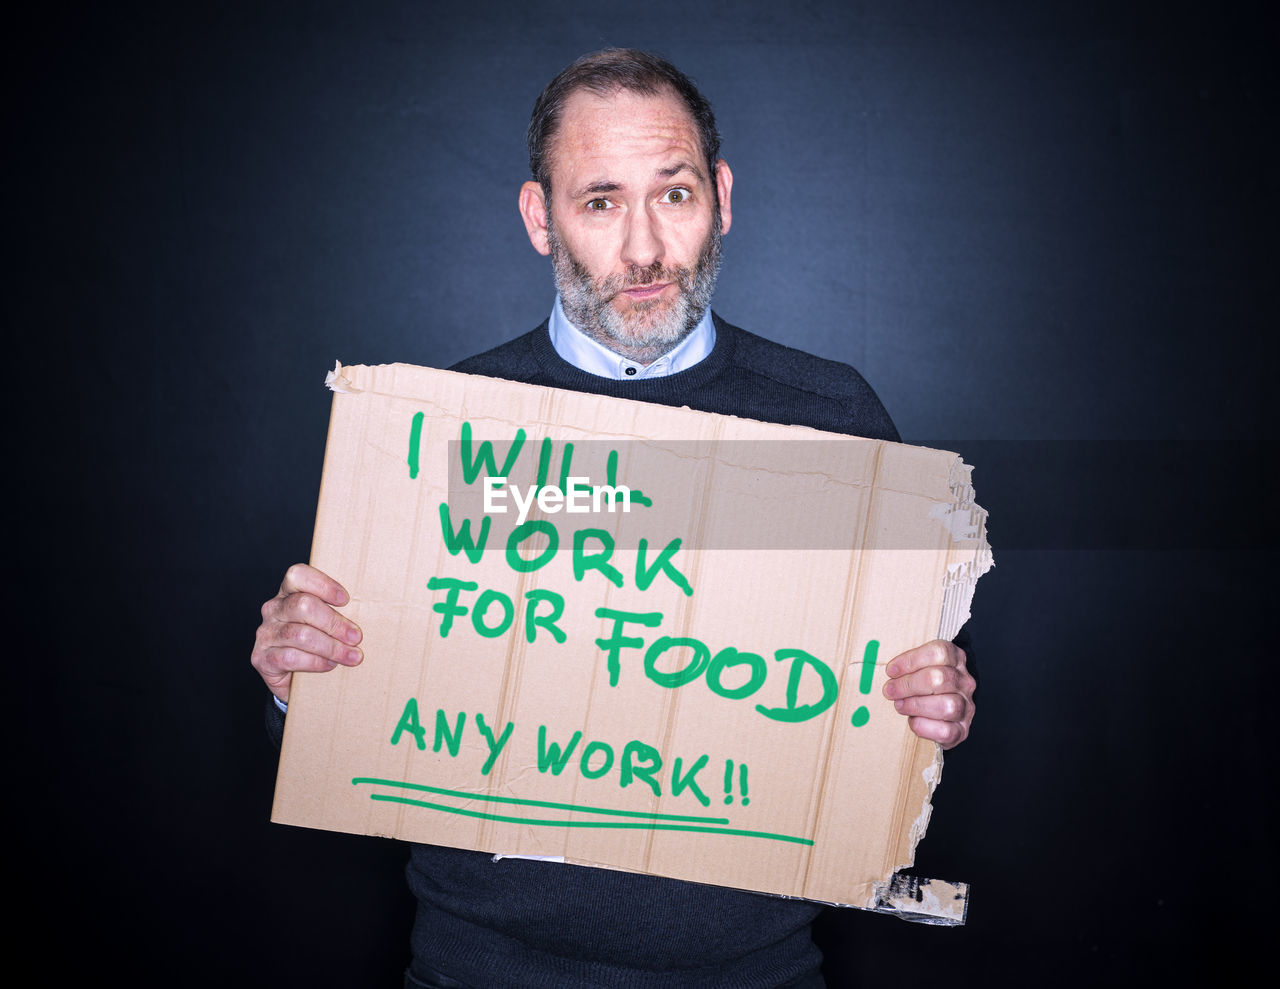 one person, studio shot, holding, looking at camera, text, portrait, black background, sign, indoors, western script, front view, cardboard, communication, mature adult, casual clothing, males, standing, men, adult, mature men, message, social issues, unemployment